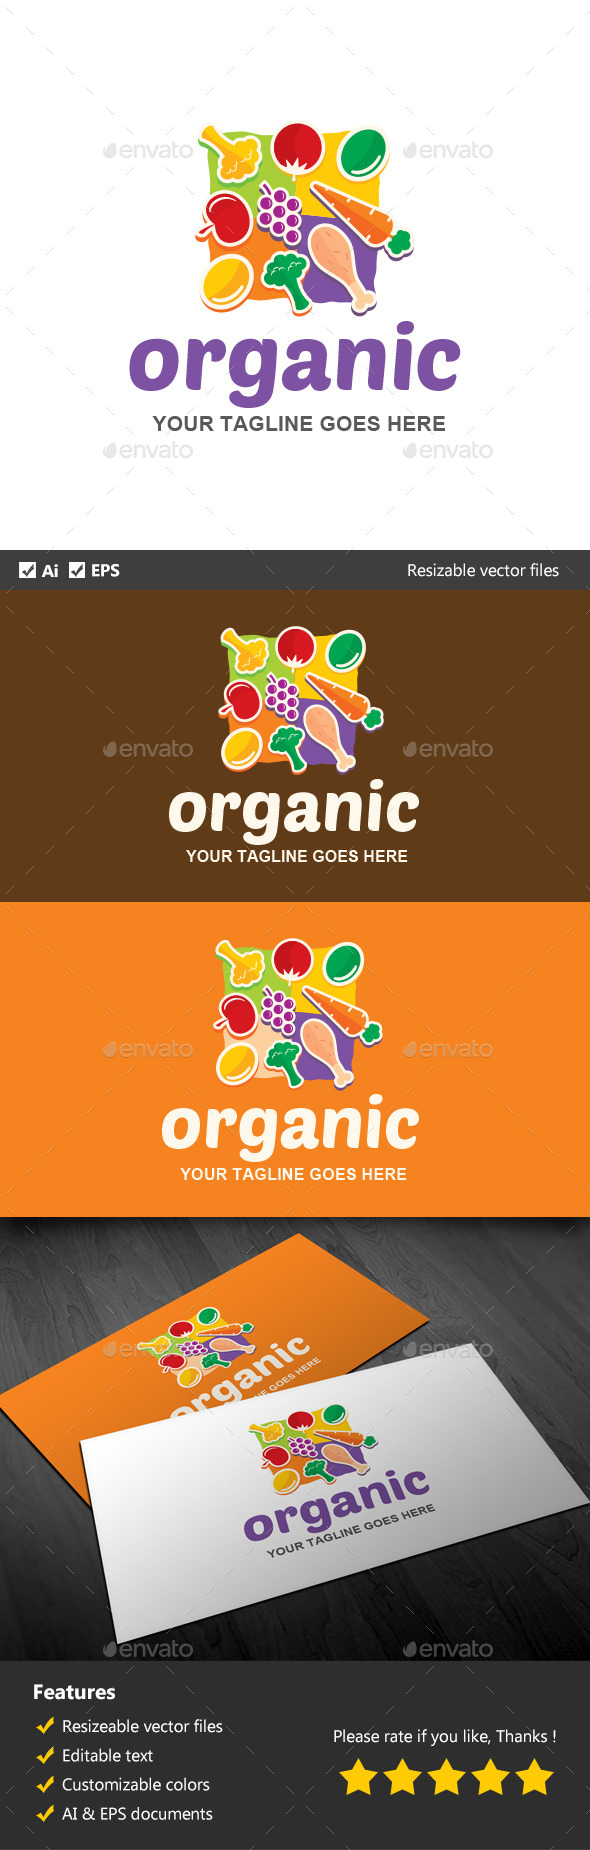 GraphicRiver Organic 11913444